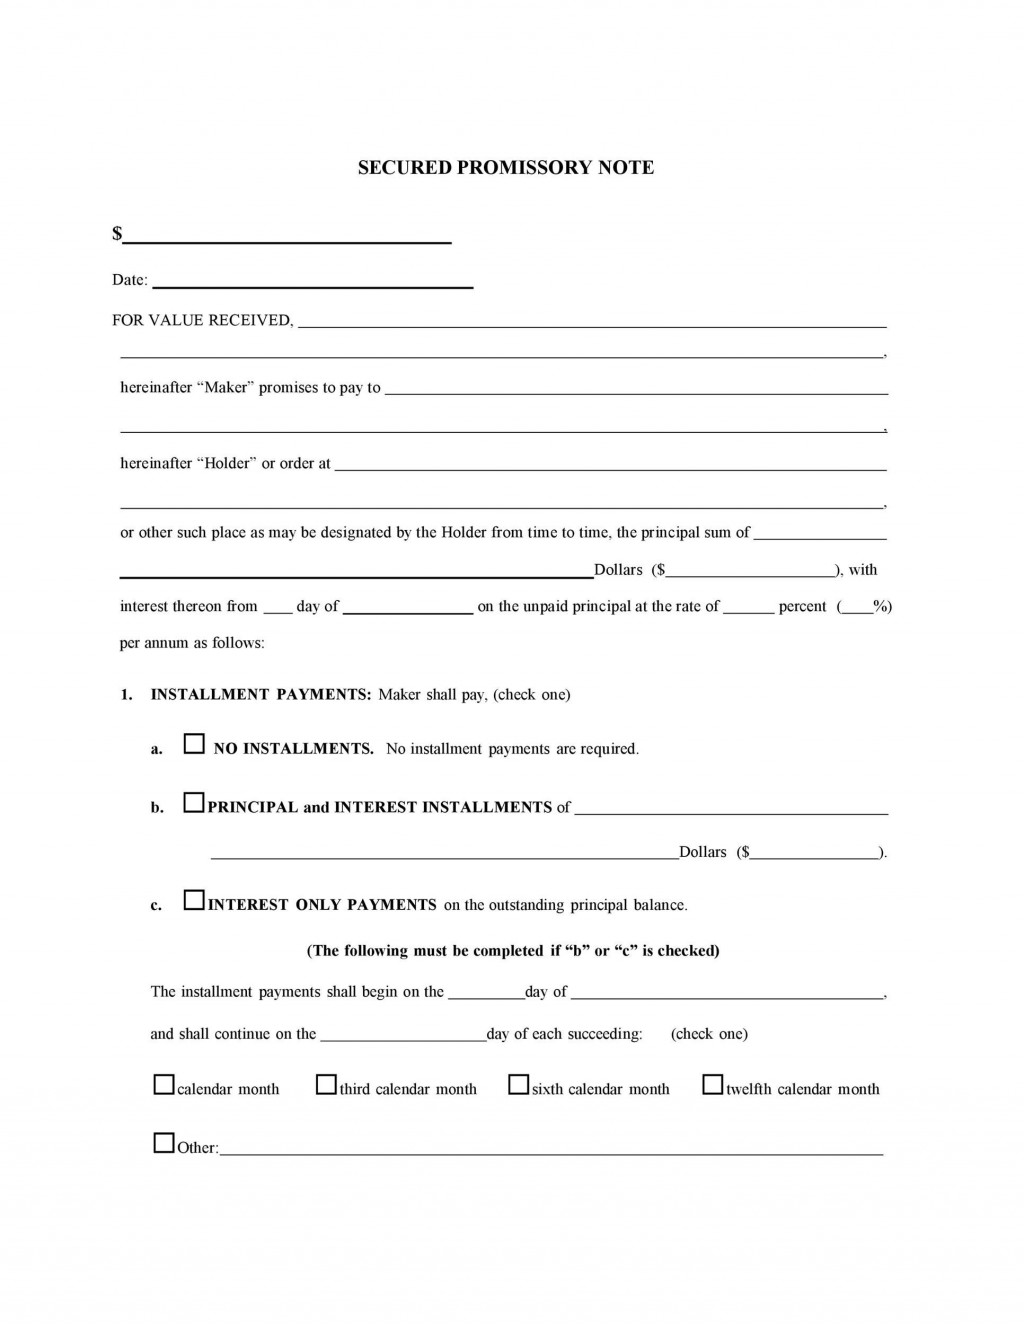 008 Fascinating Promissory Note Template Free Photo  Printable Blank Form Download Pdf CanadaLarge